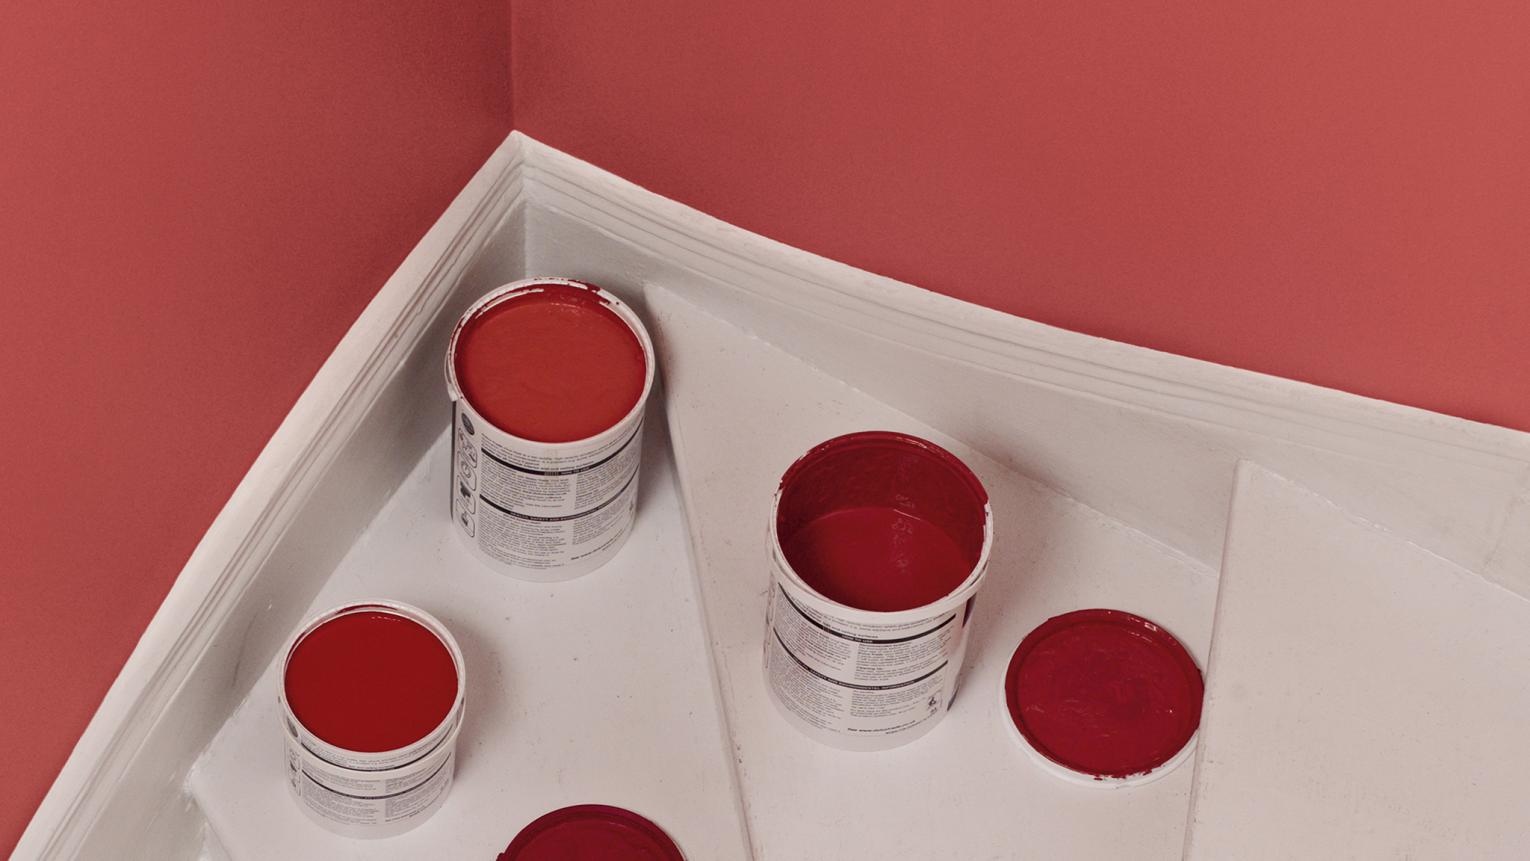 Leftover red paint that needs to be disposed of.